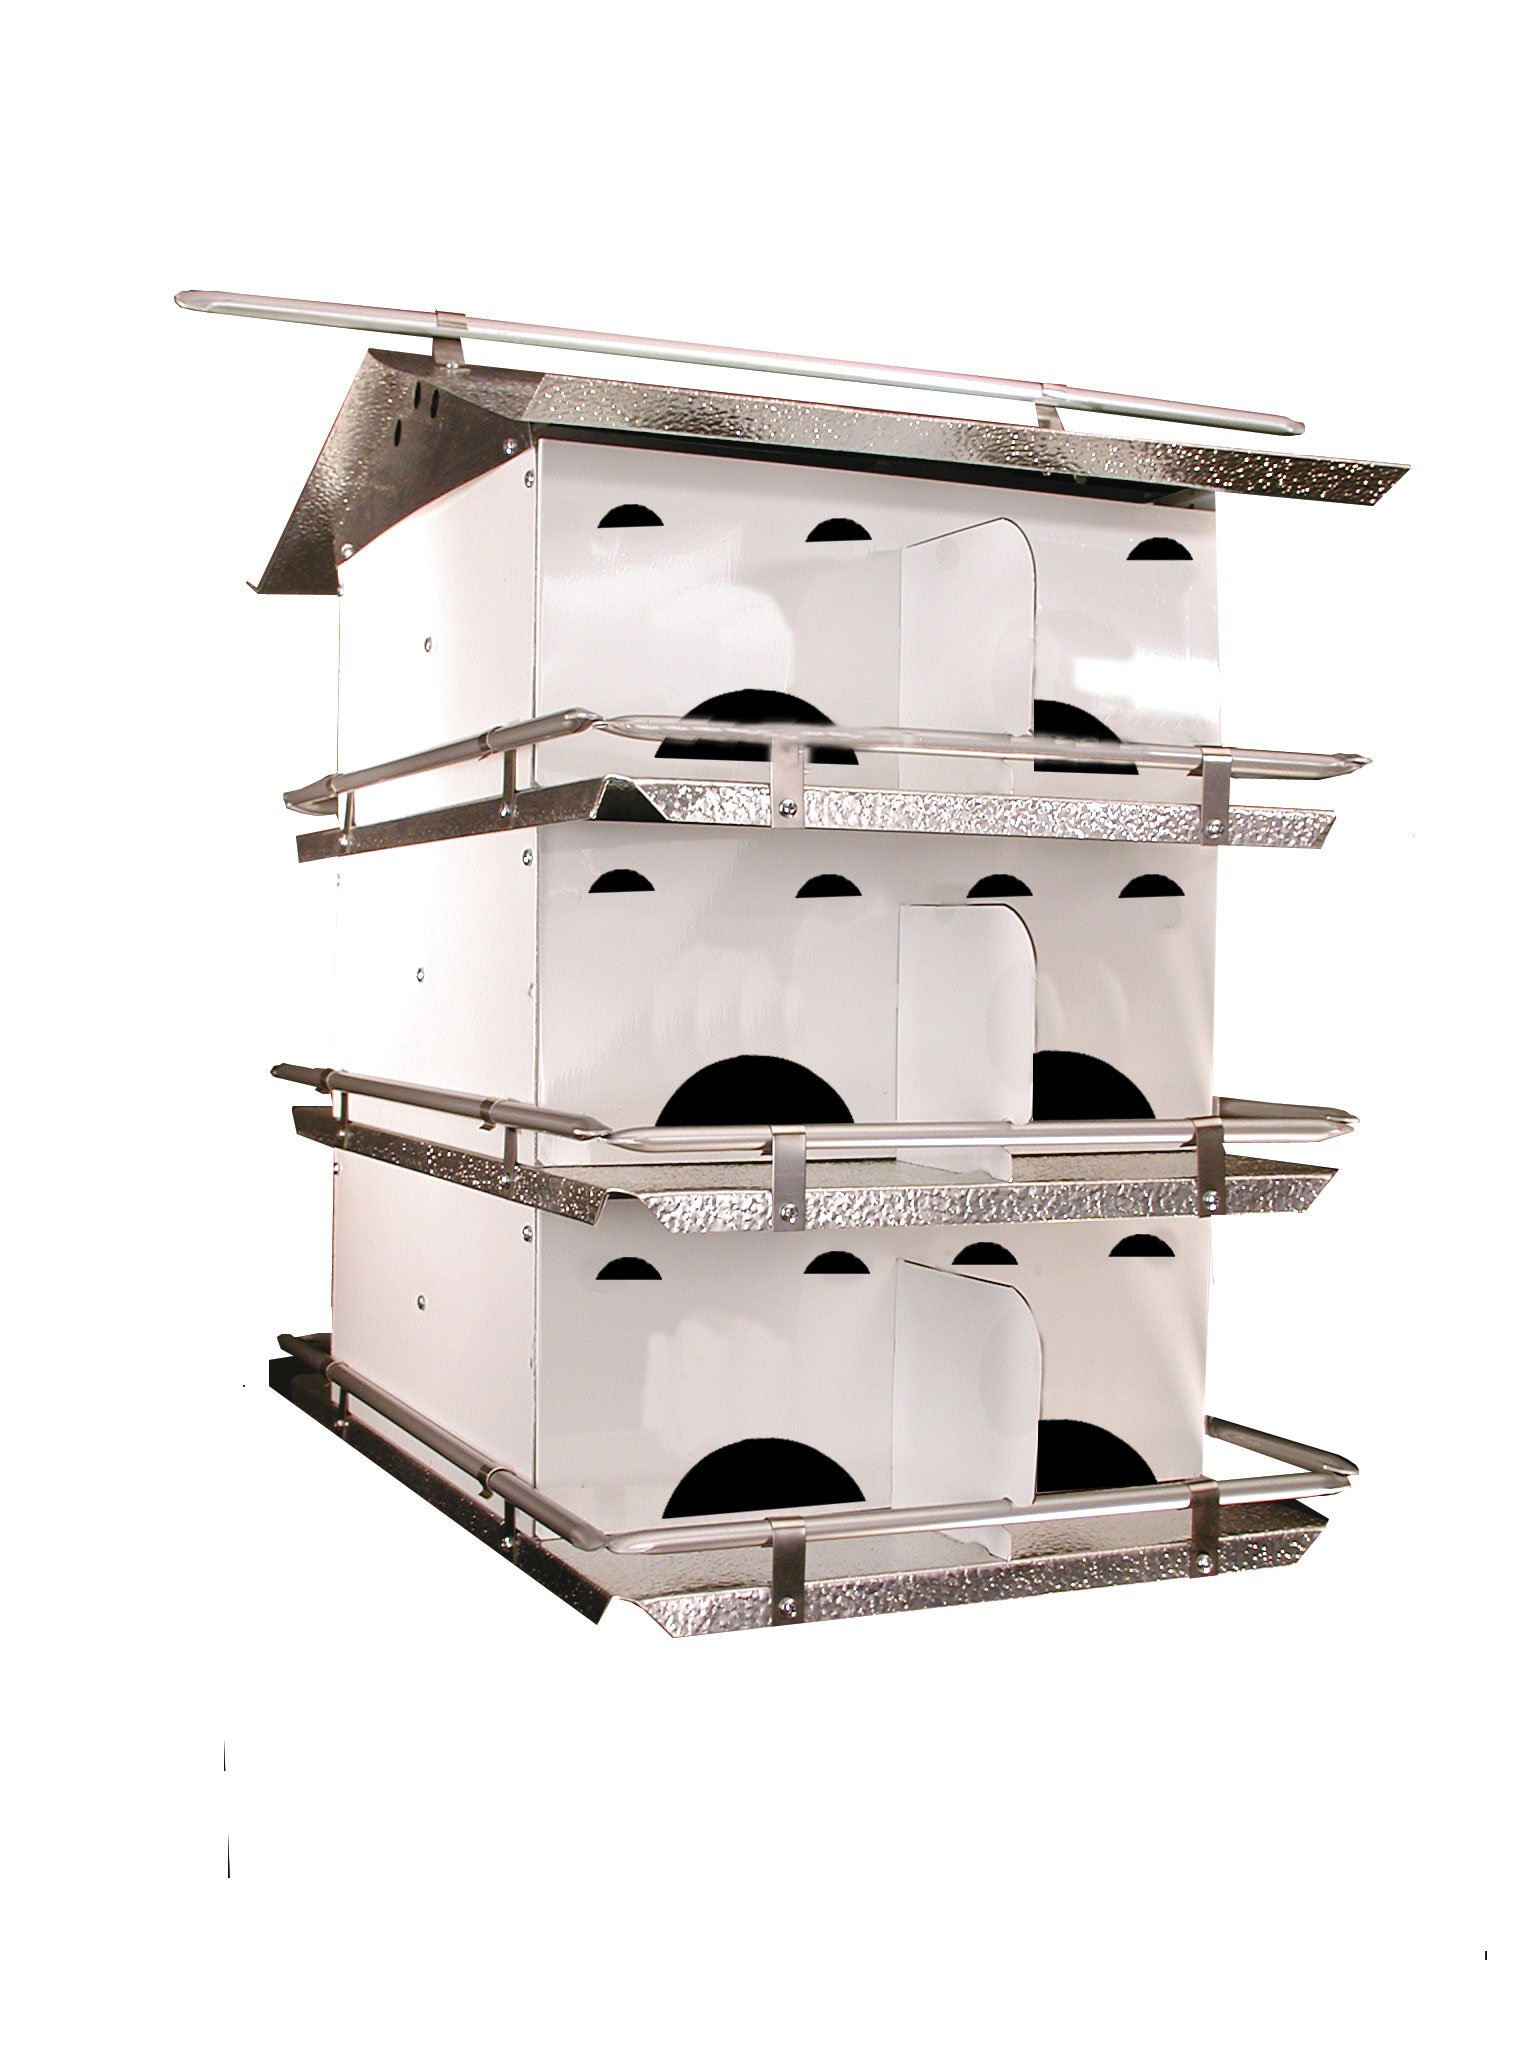 Birds Choice 3-Floor-12 Room Purple Martin House with Starling Resistent Holes by Birds Choice (Image #1)